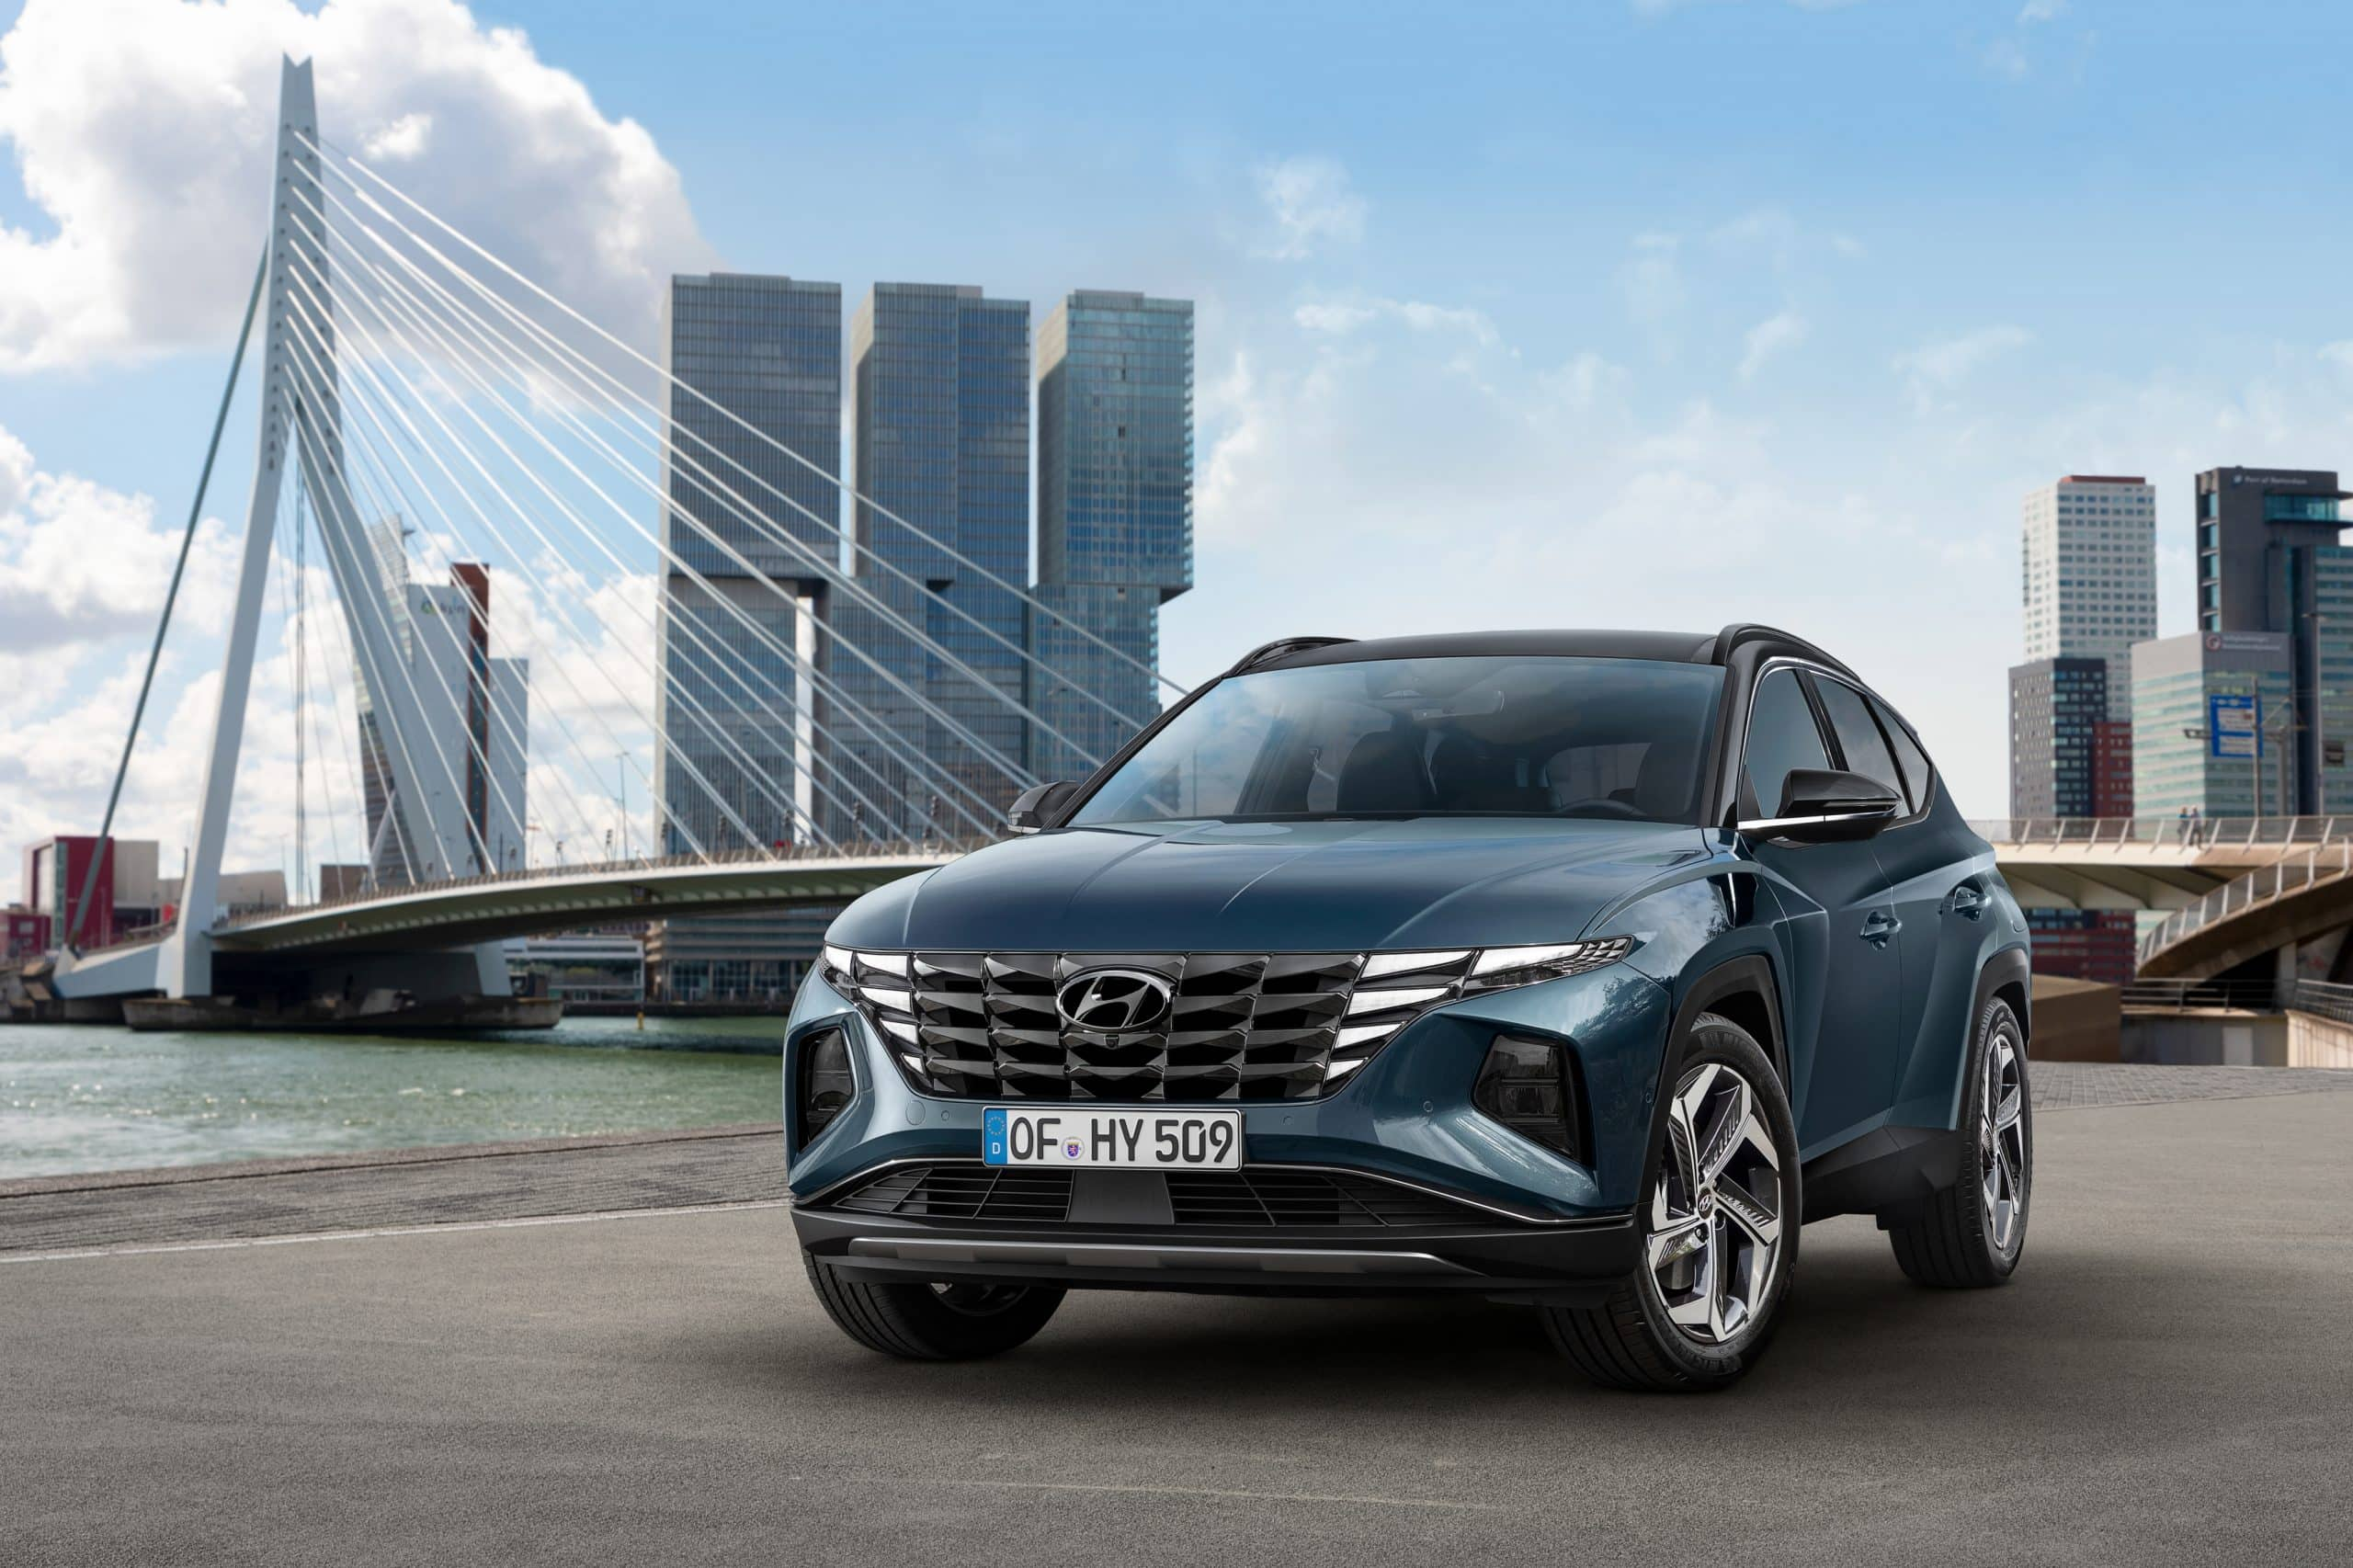 Hyundai Motor has unveiled the all-new Tucson